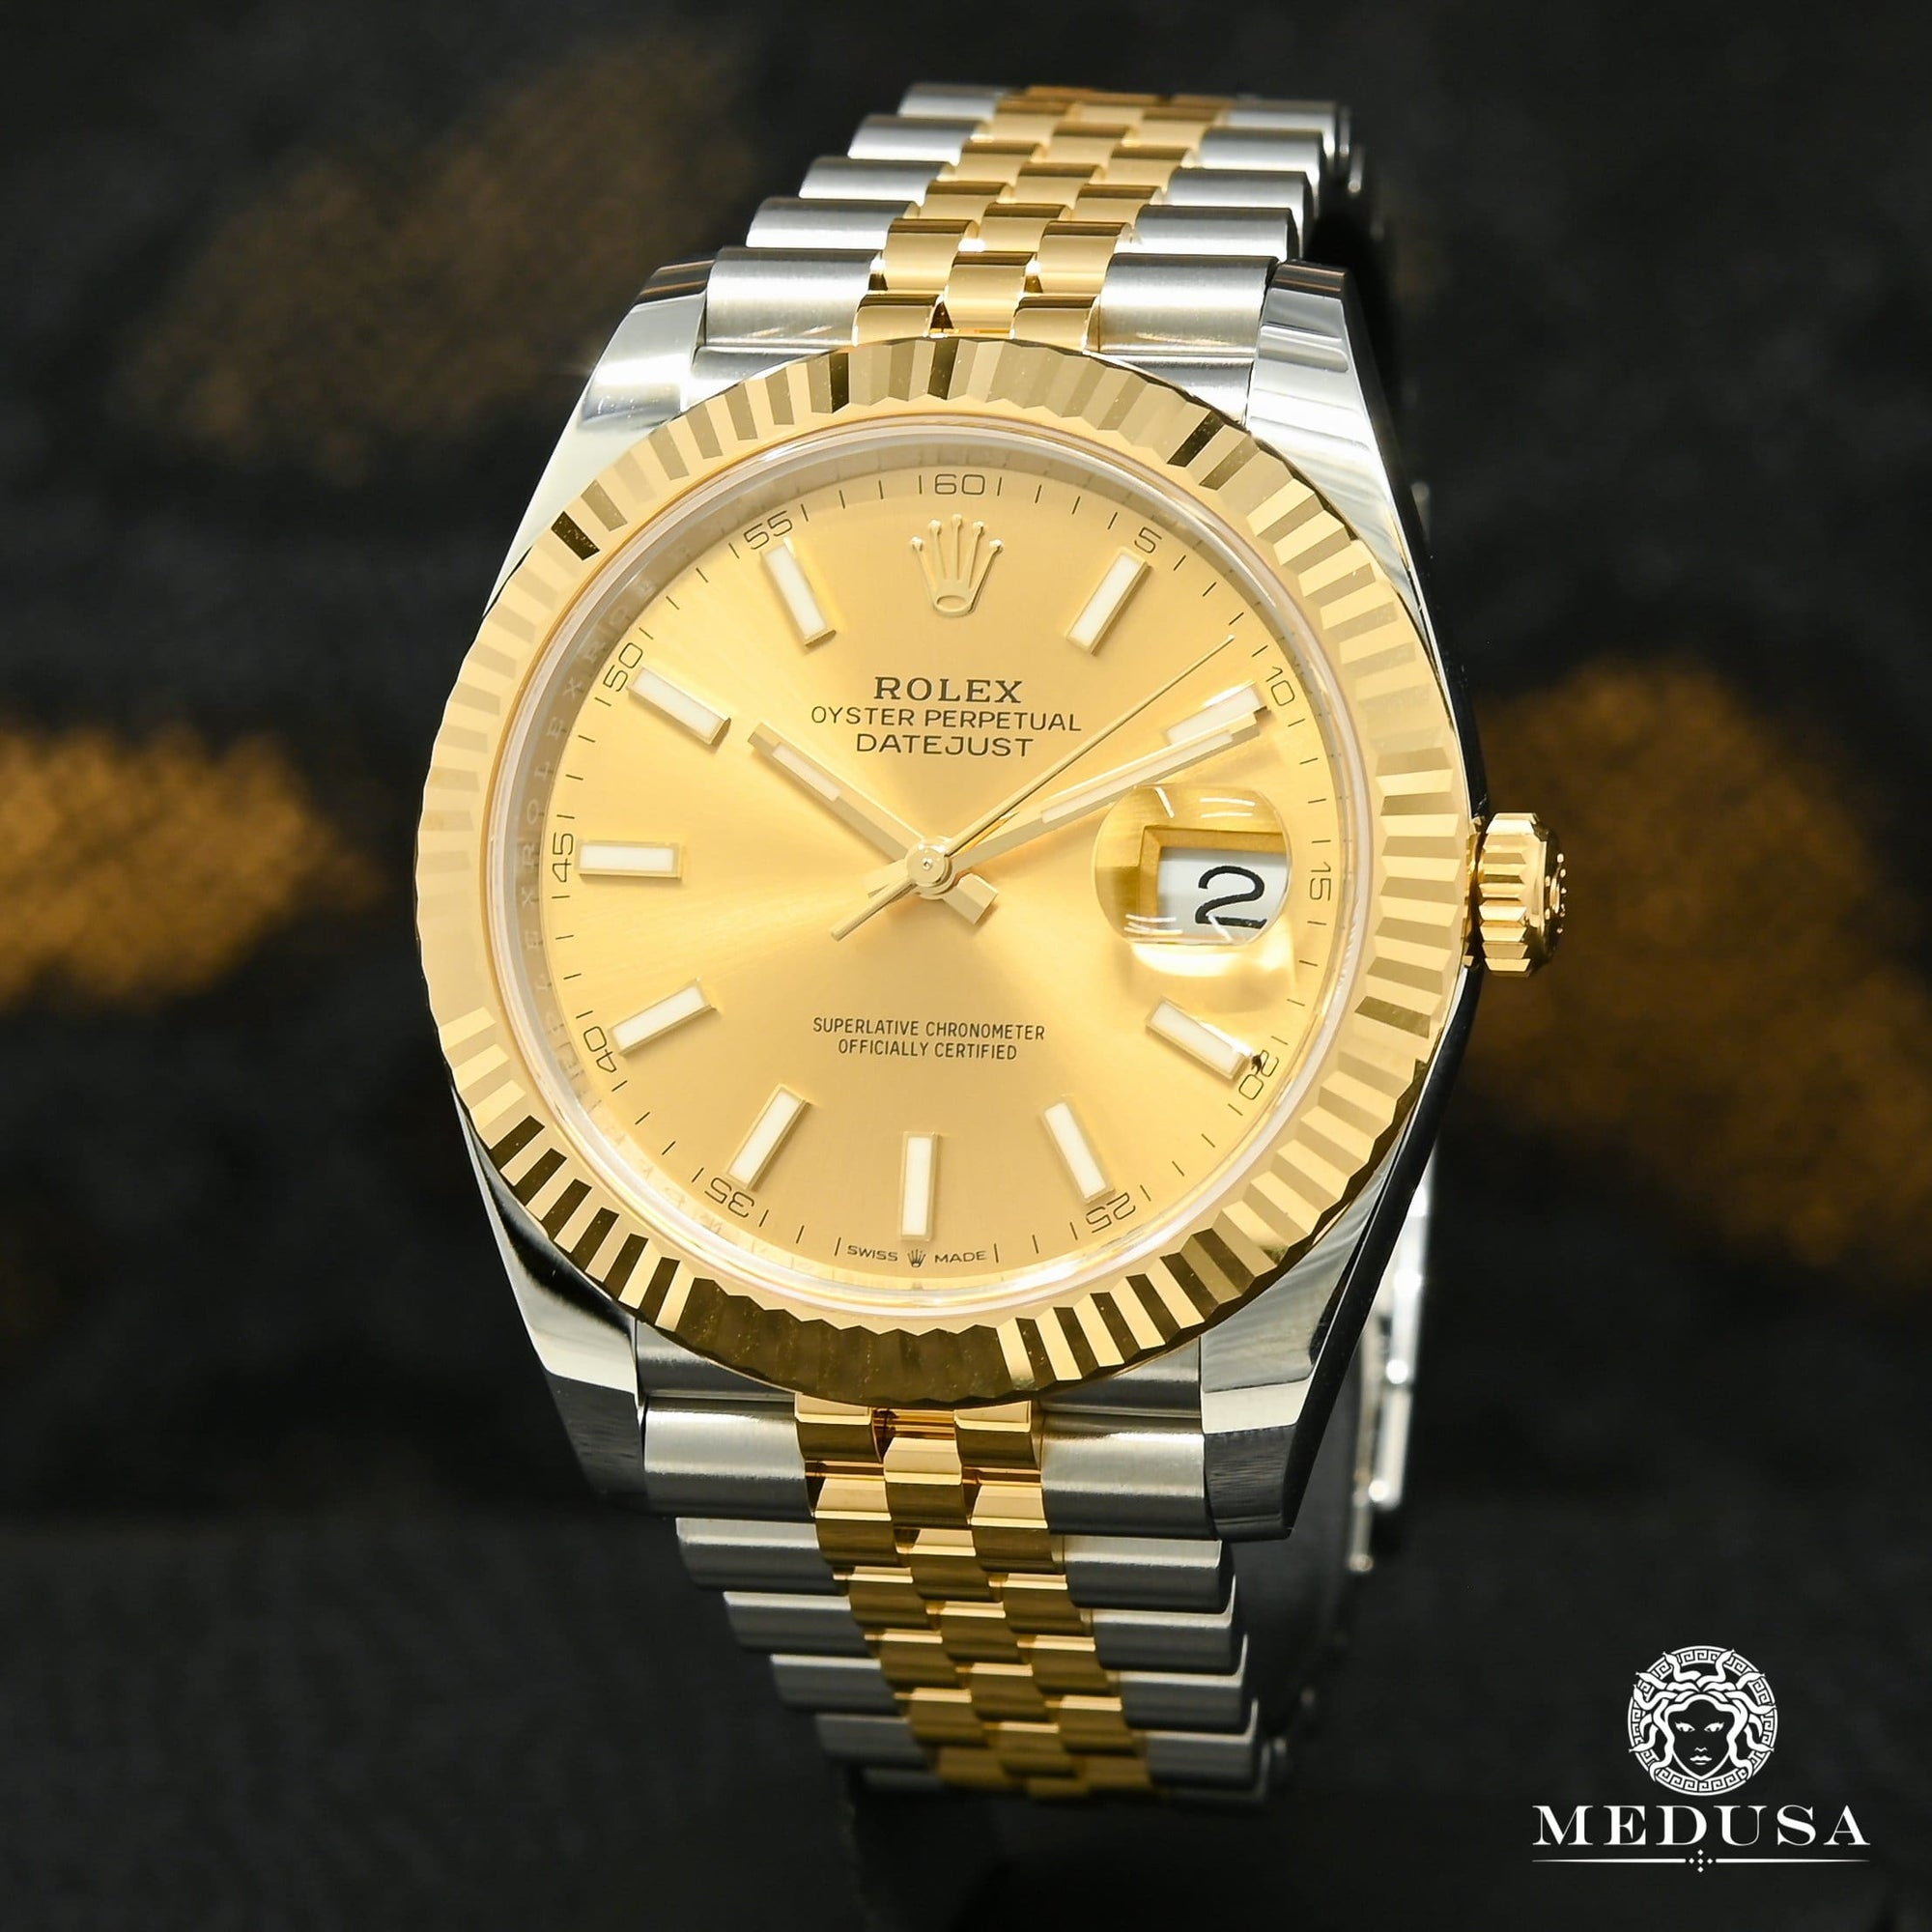 Rolex Datejust 41mm - Champagne Jubilee Fluted